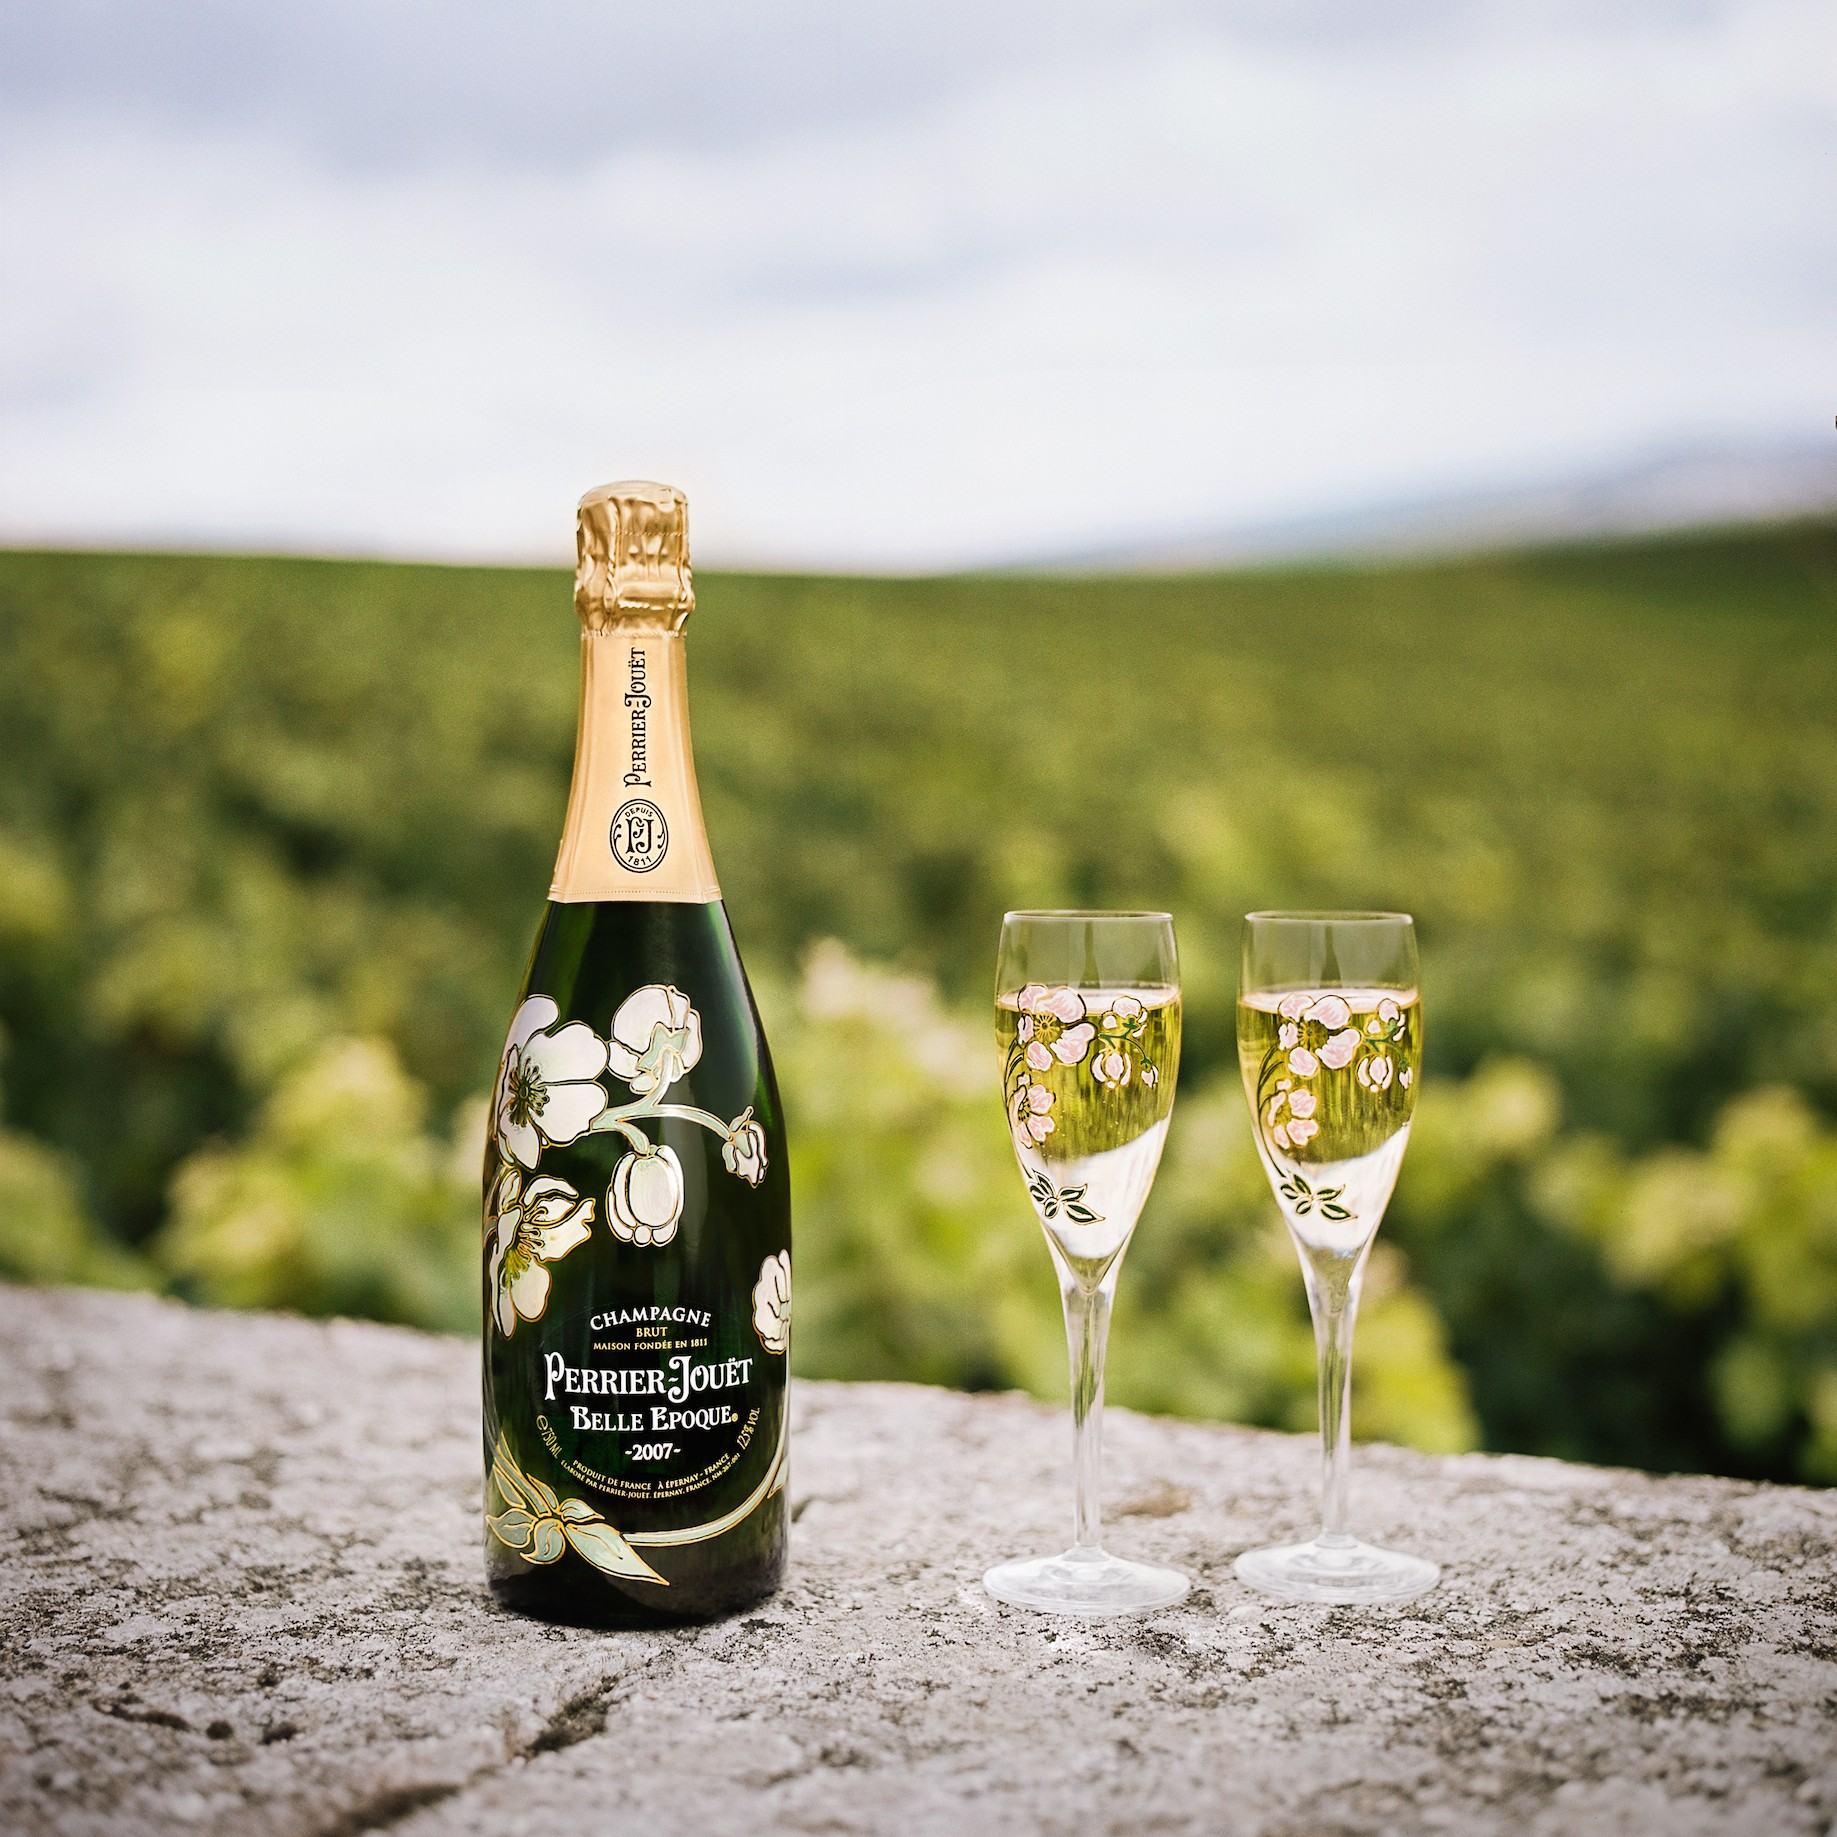 Perrier Jouet This Magnificent Life